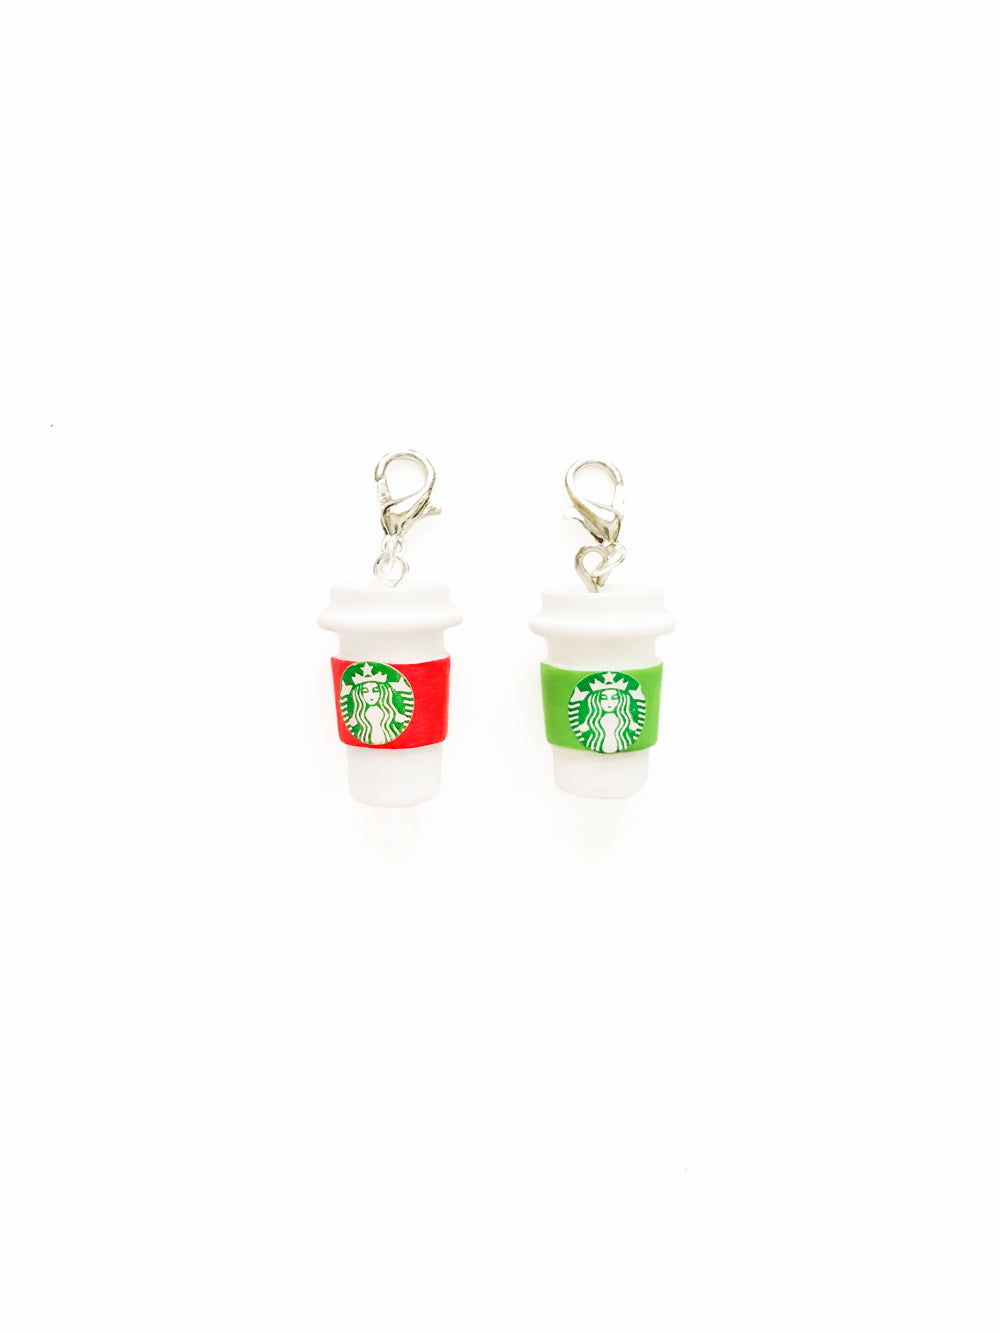 Christmas Starbucks Cup Zipper Pull Gift Set